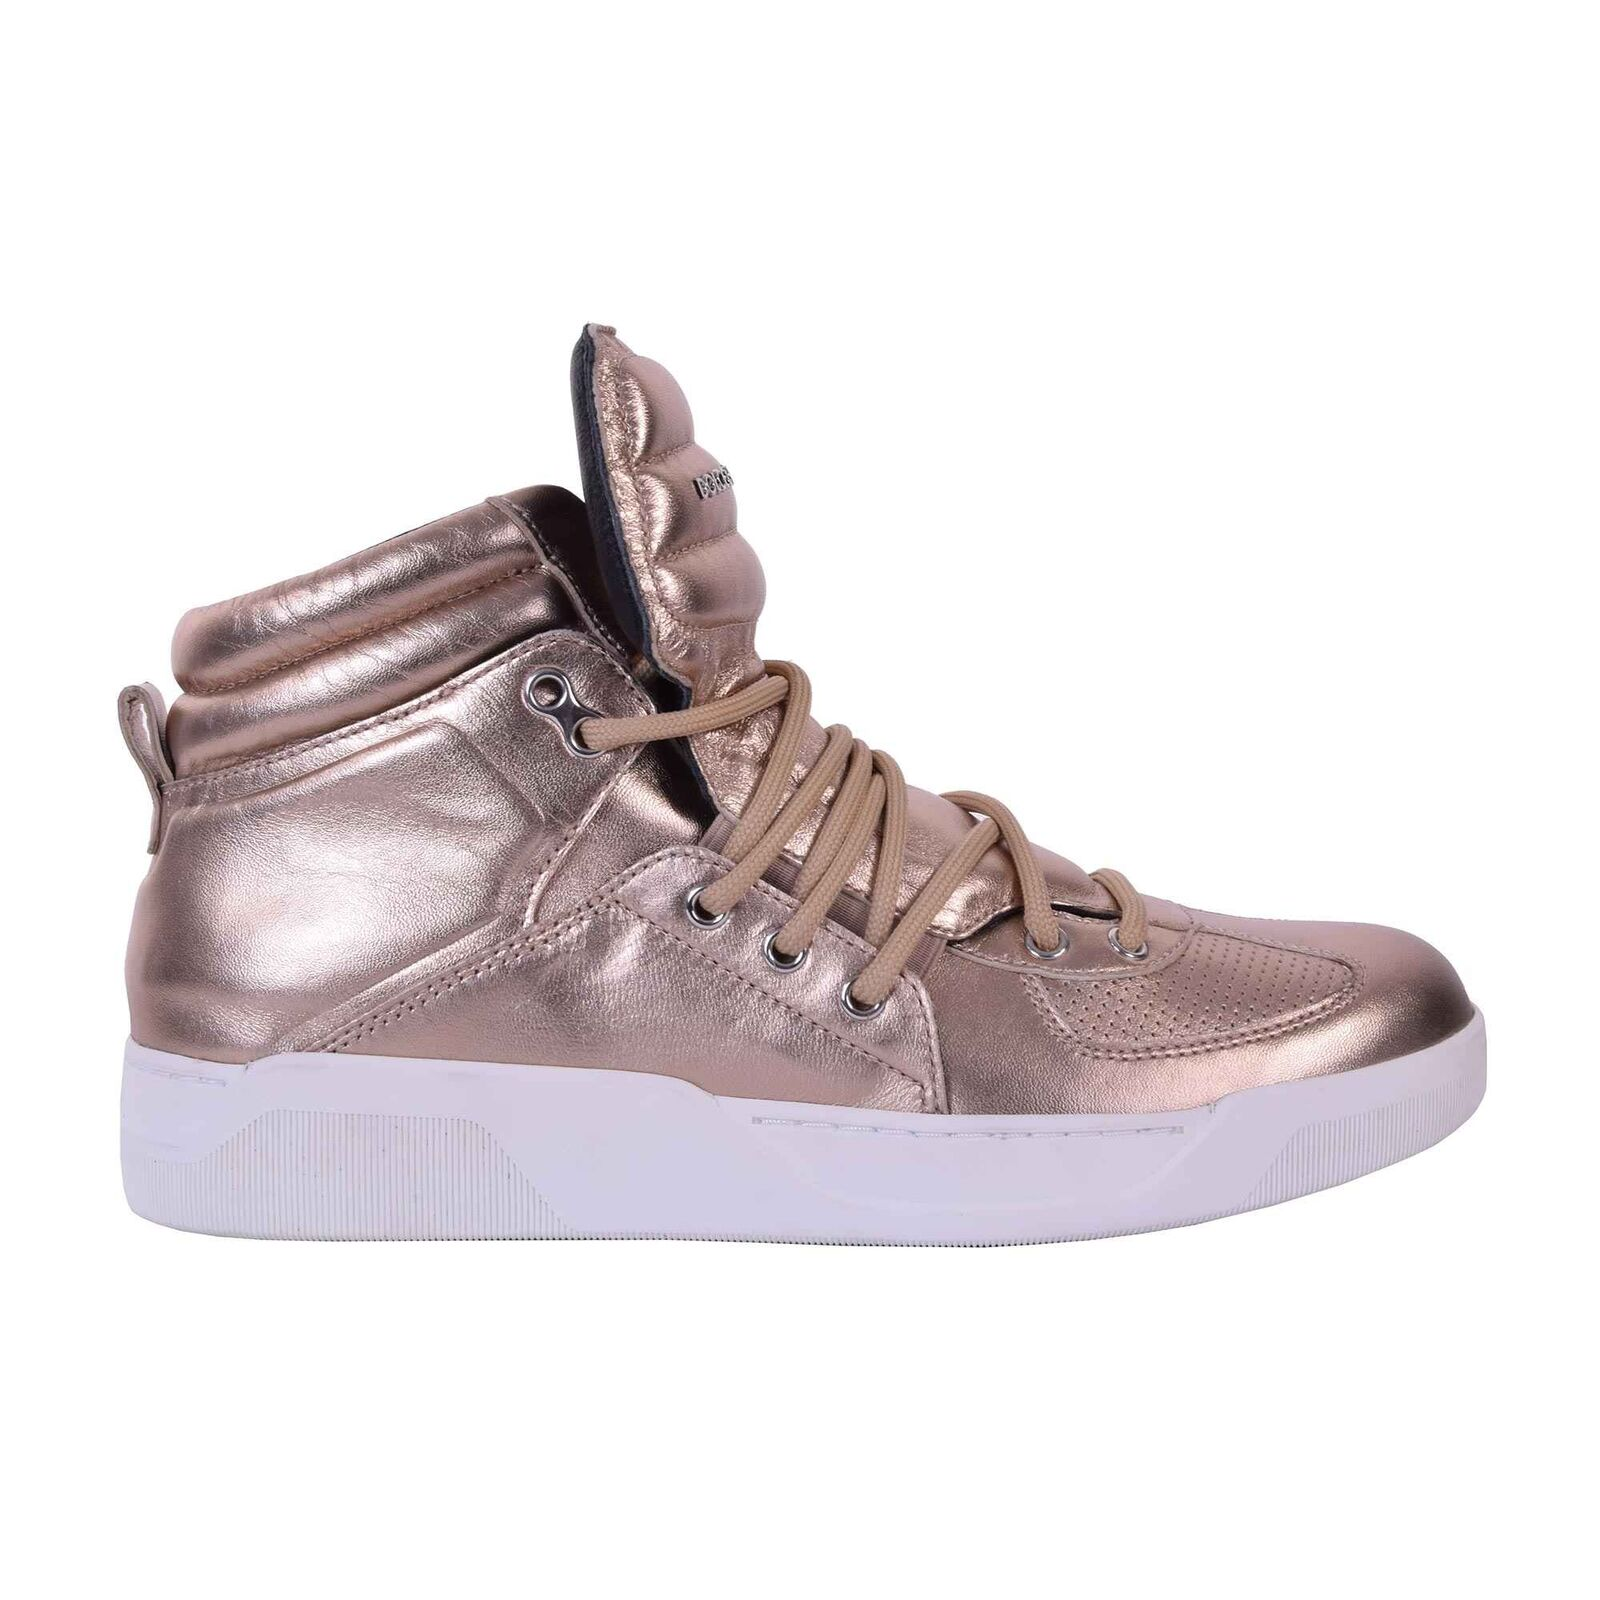 DOLCE & GABBANA Shiny Nappa High-Top Sneaker Sneakers Shoes BENELUX Gold 05937